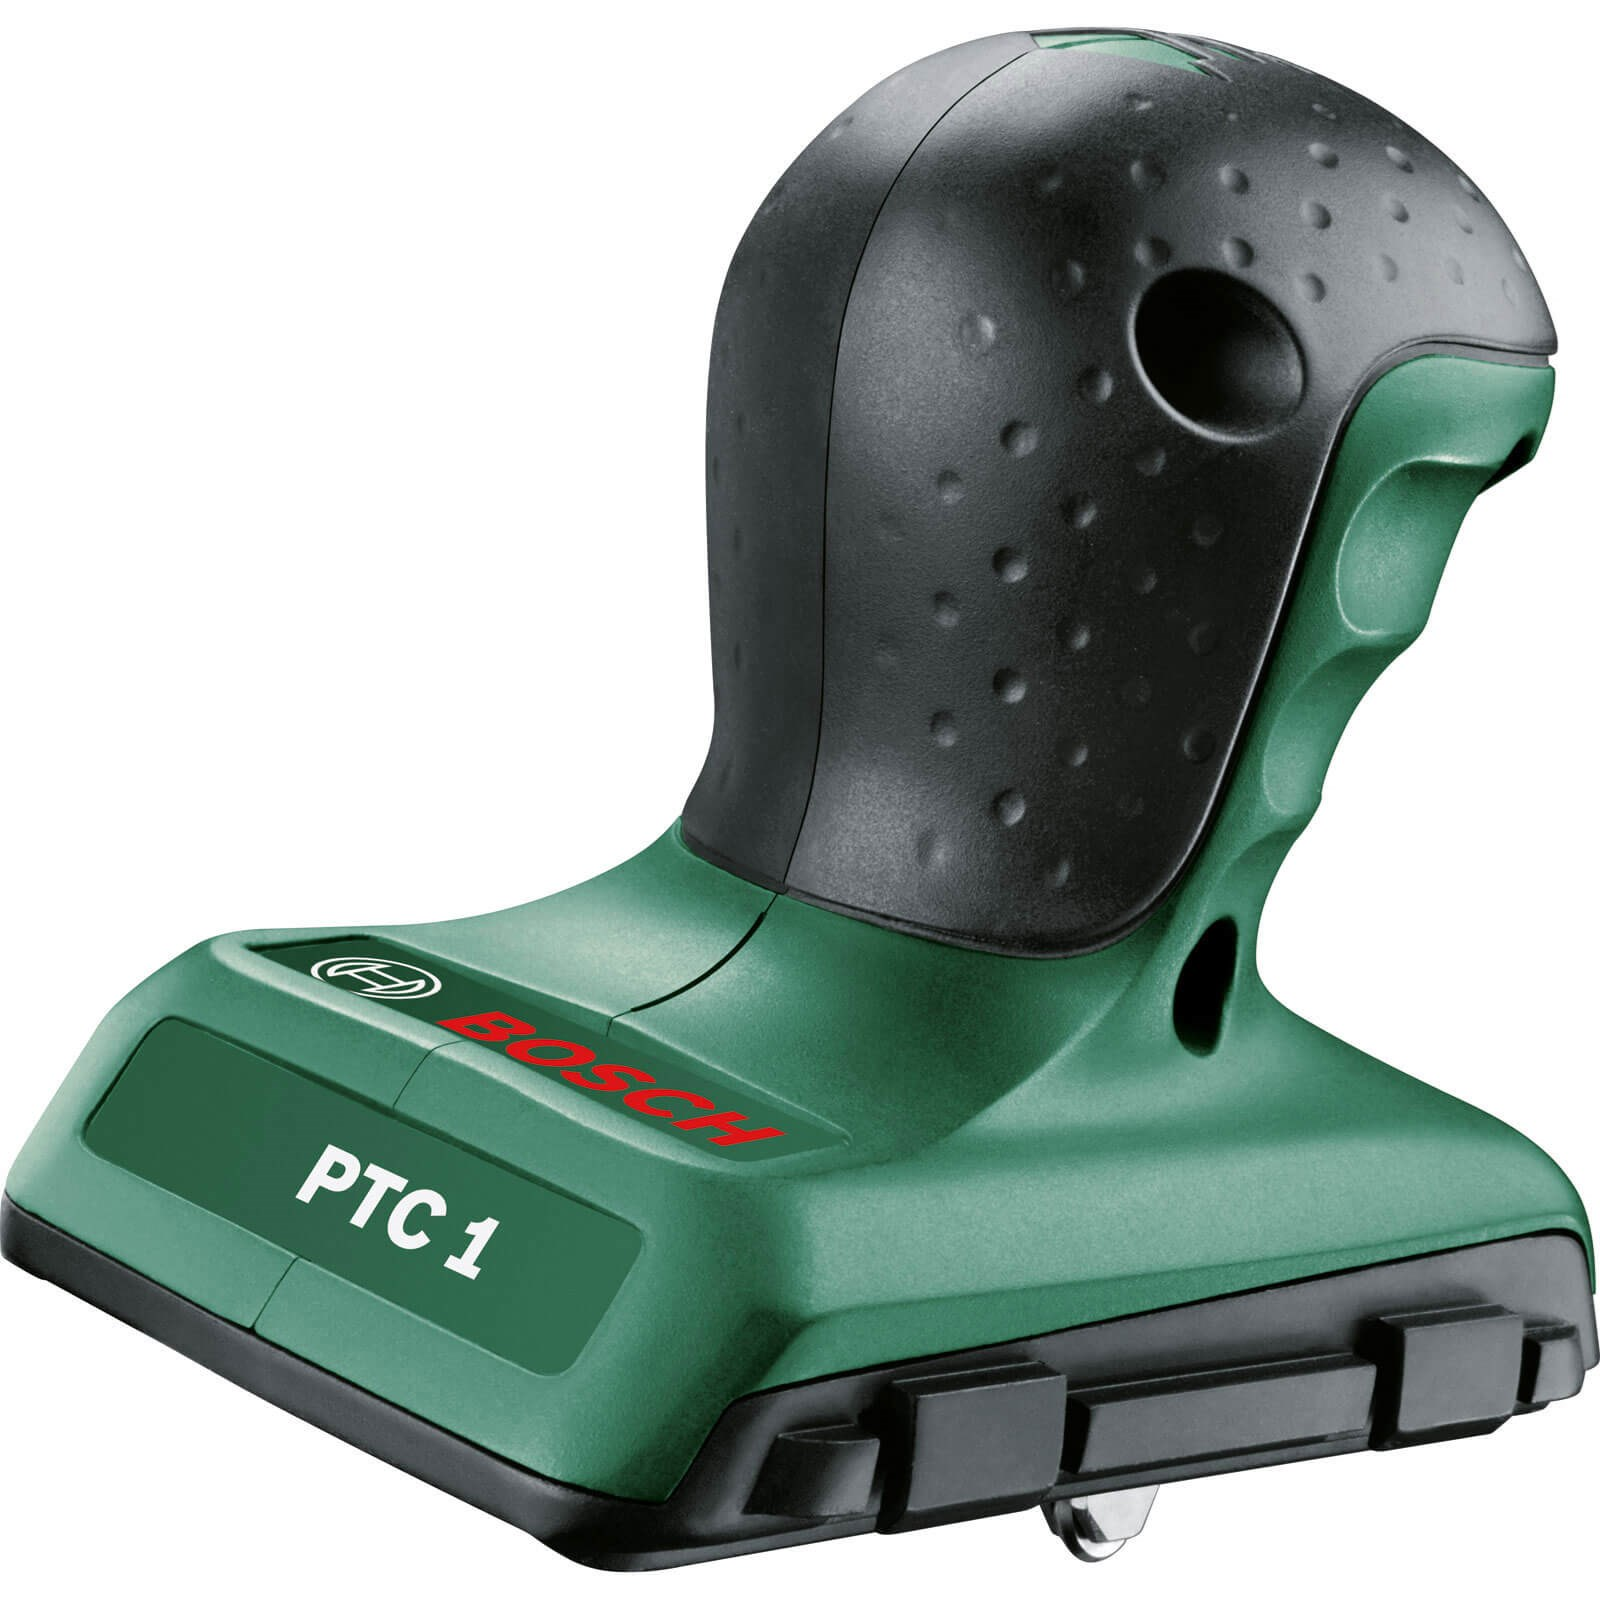 zzz bosch ptc 1 tile cutter attachment for pls 300 guide rail